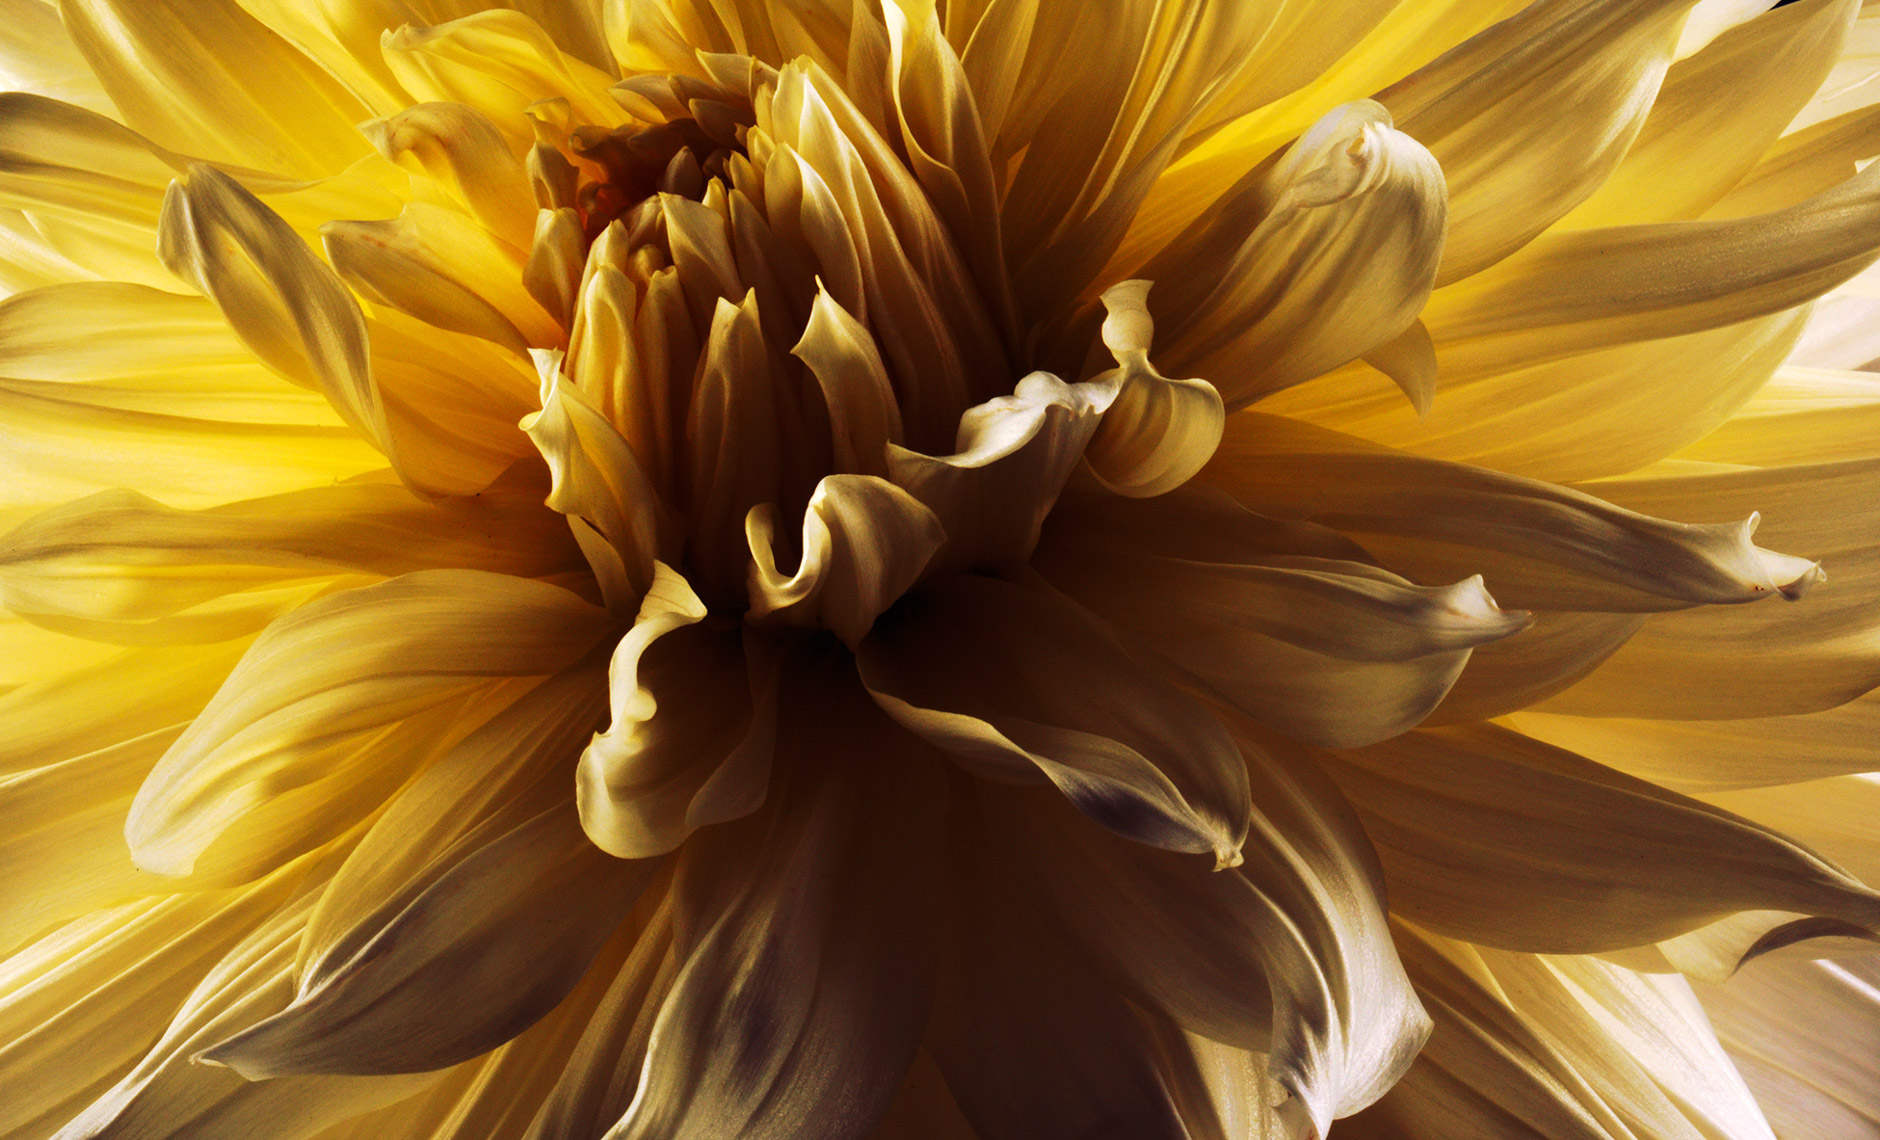 Dahlia Fine Art photograph by Peter Samuels